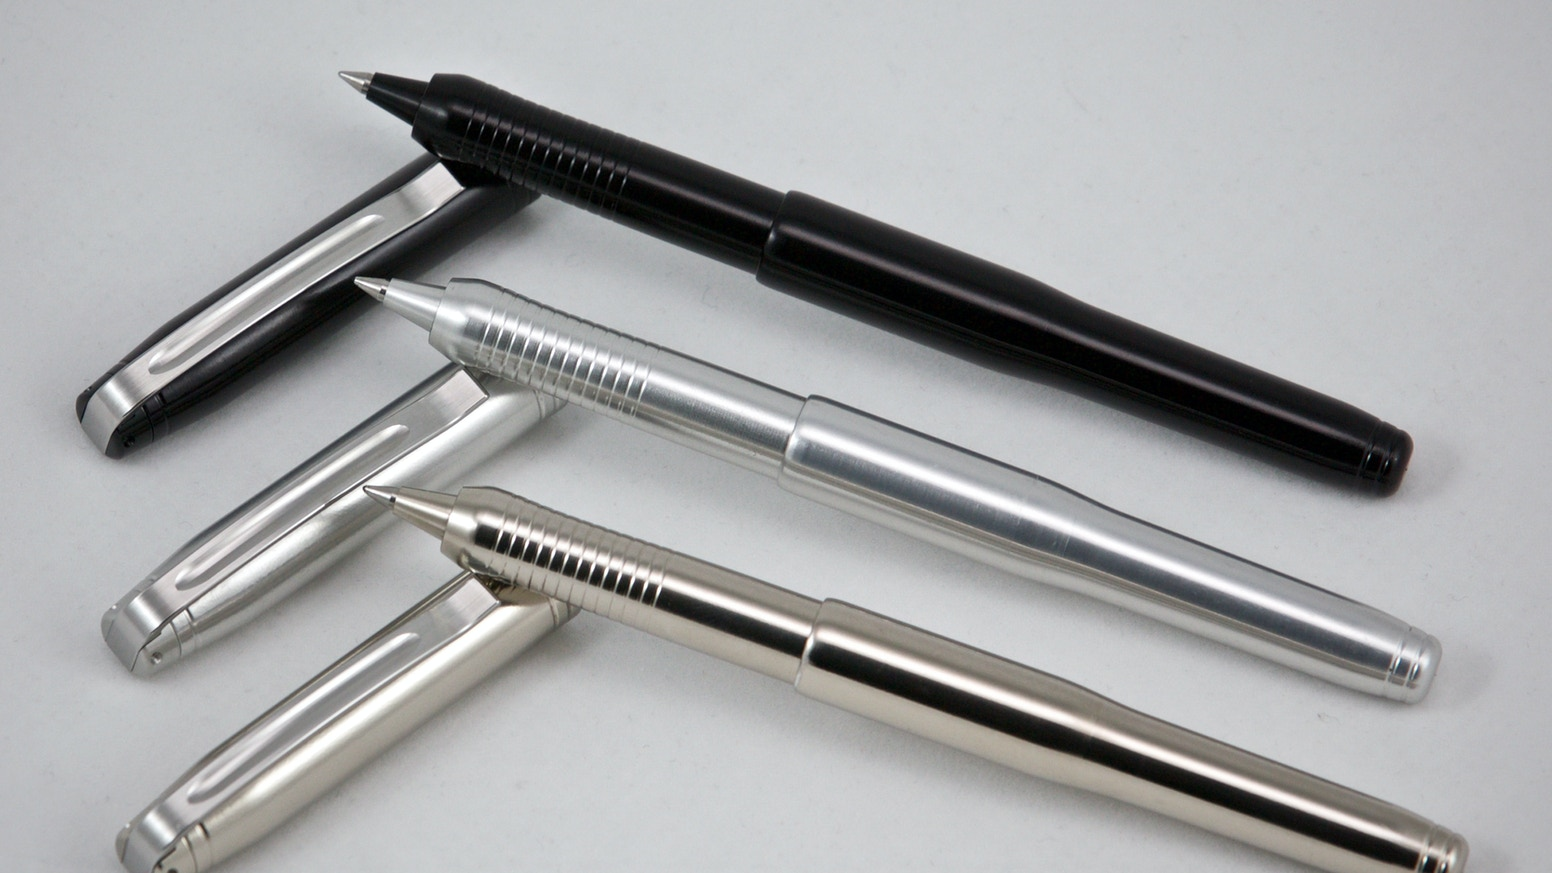 A meticulously engineered pen for those who appreciate finely machined components and superior quality without compromise